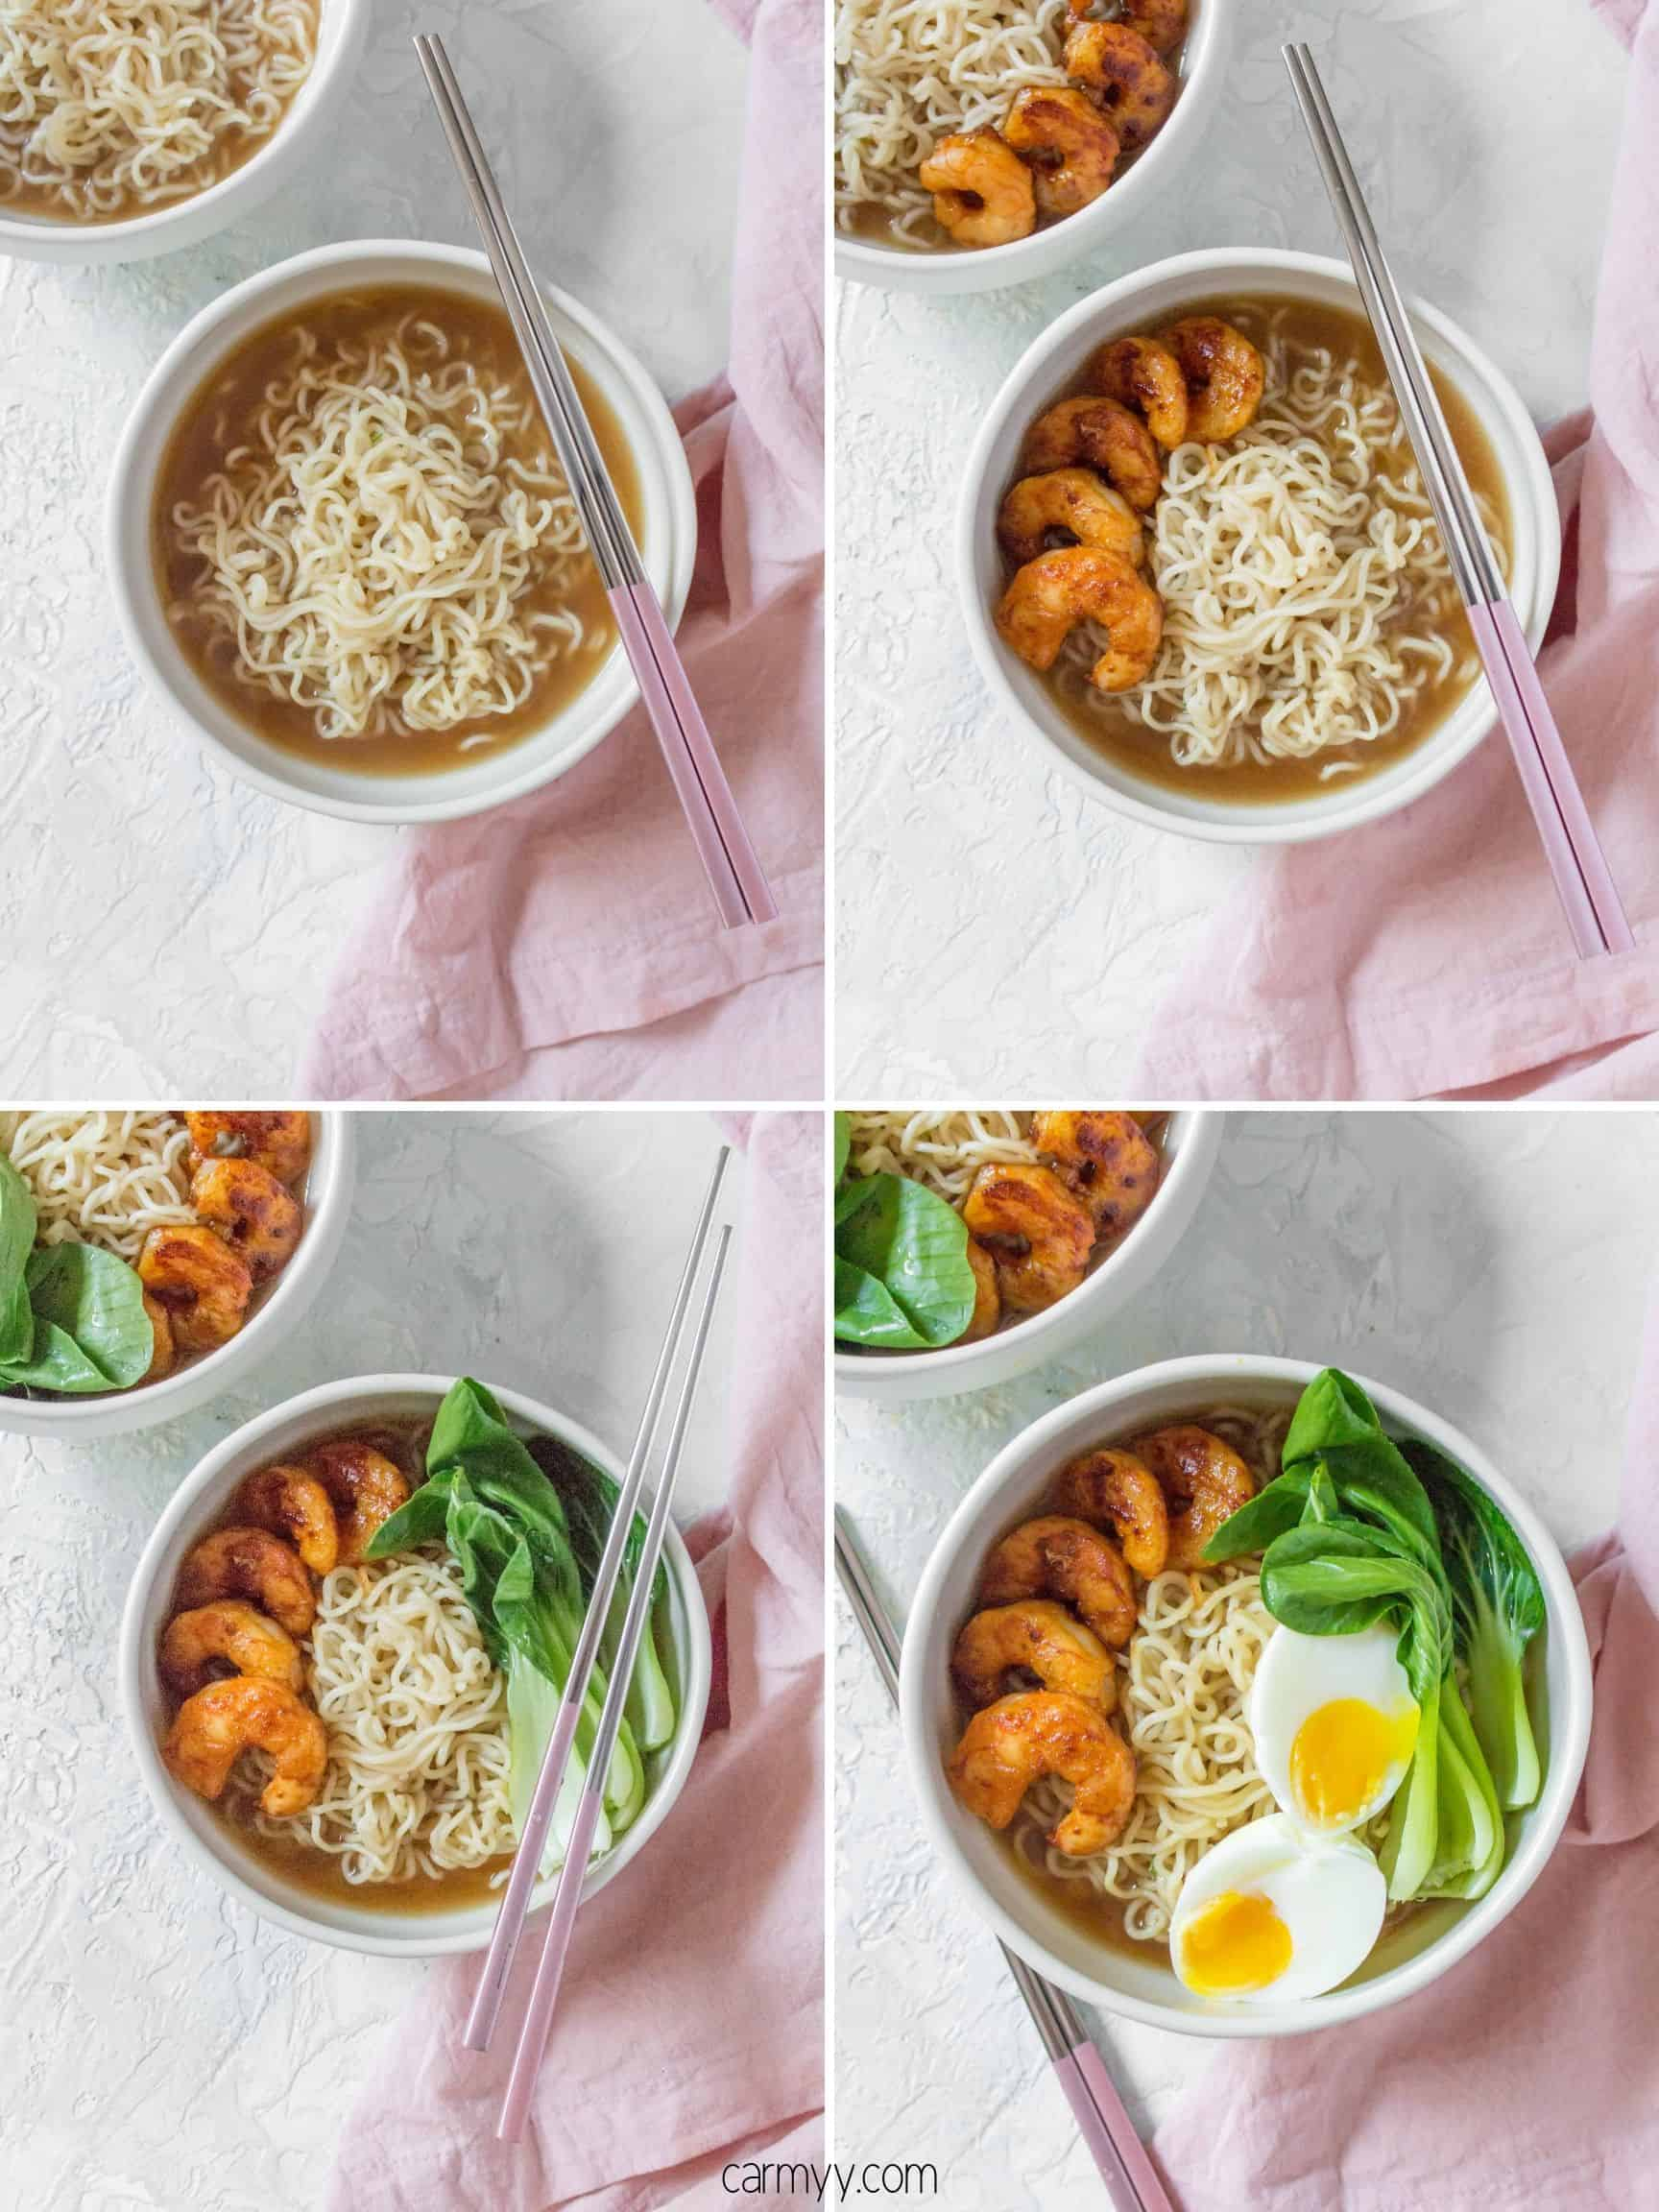 Want to give your boring Instant Ramen an upgrade? Here's how to make your Instant Ramen taste amazing and healthier!